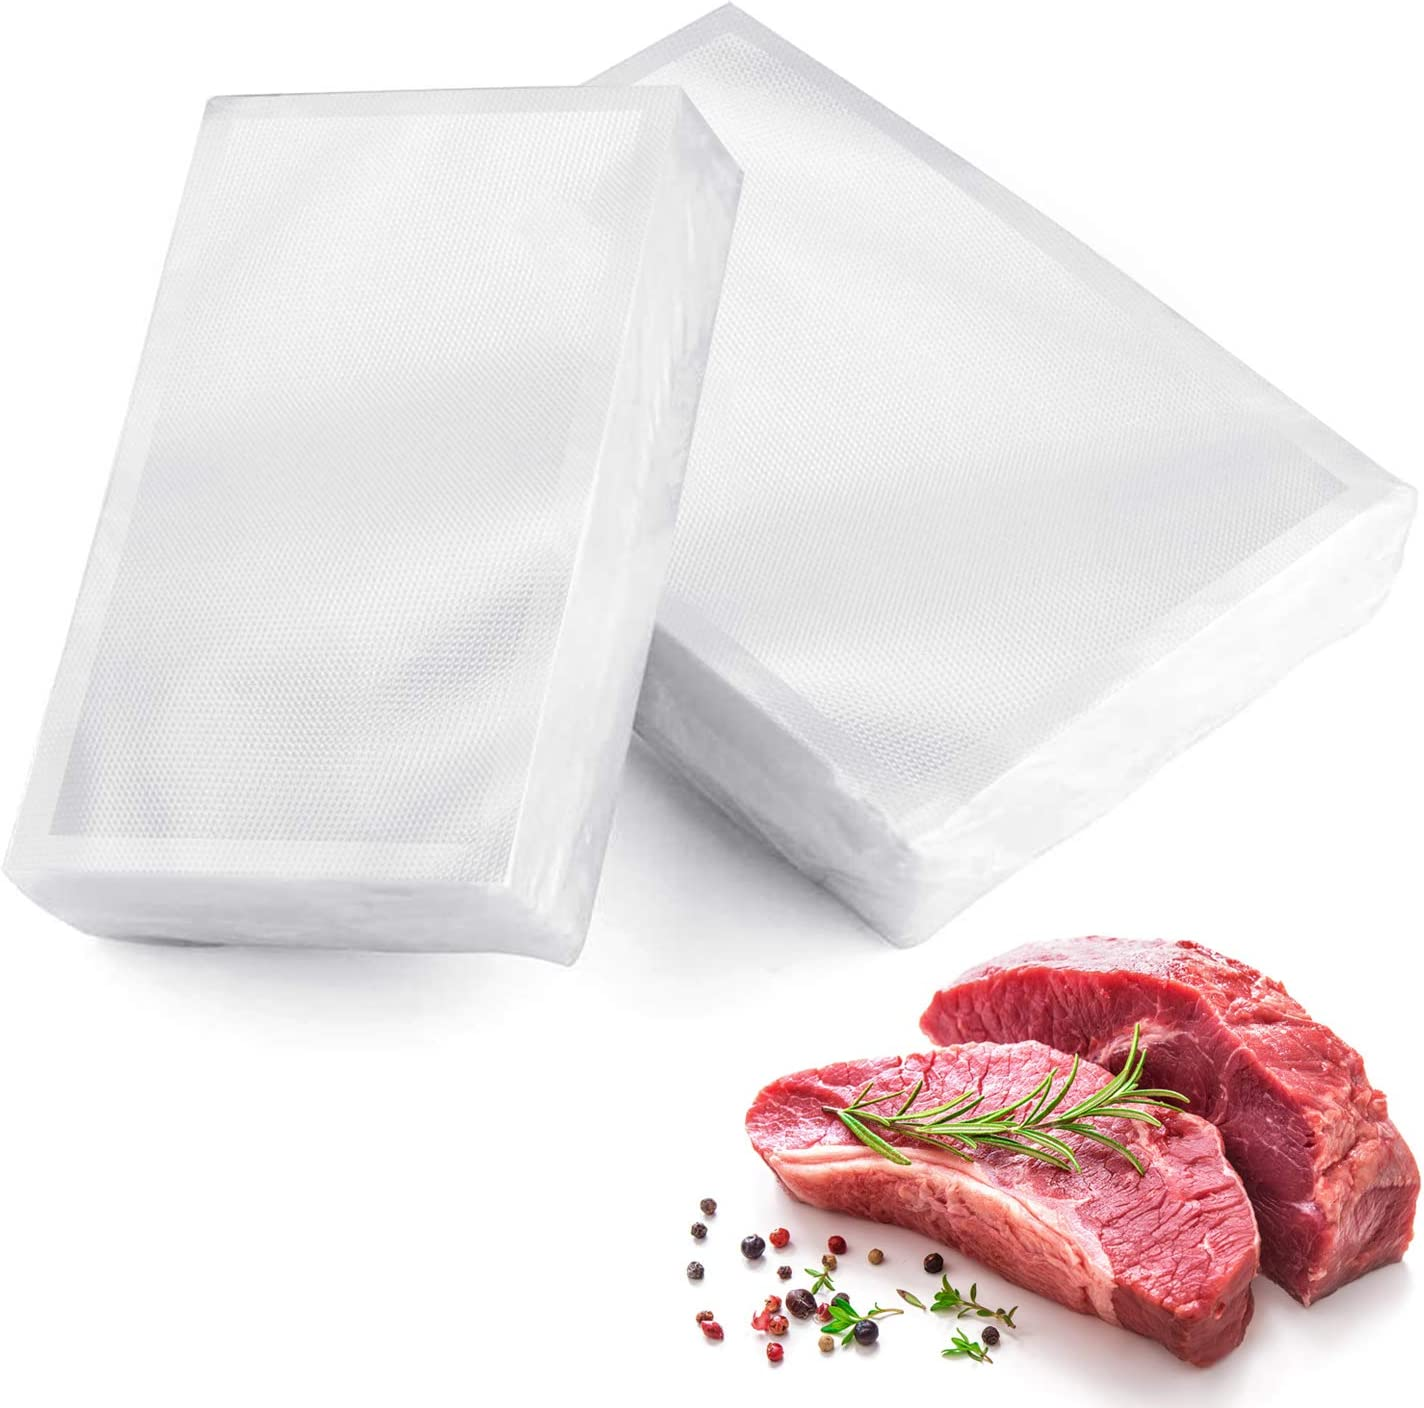 150 Vacuum Sealer Bags, Tobeelec 100 Quart Size 8 x 12 inch and 50 Pint 6x10 inch for Food Saver, Seal a Meal, BPA Free Heavy Duty Sous Vide Vac Seal PreCut Storage Bags